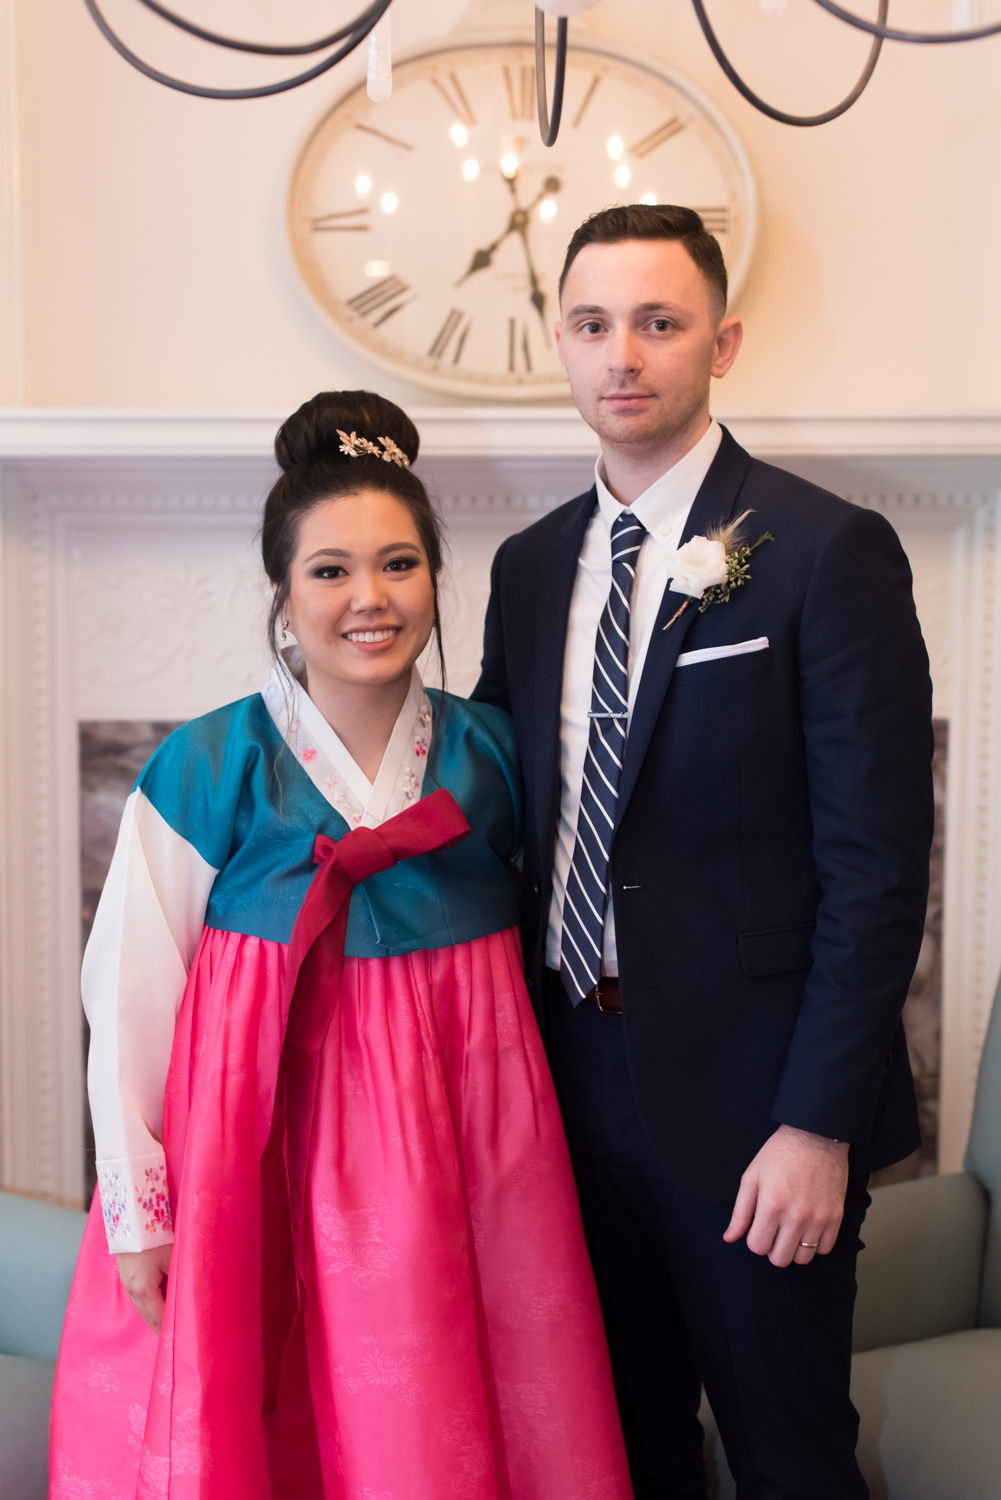 Rose Gold Wedding at Historic Post Office Virginia Harry Potter Themed Wedding-238.JPG